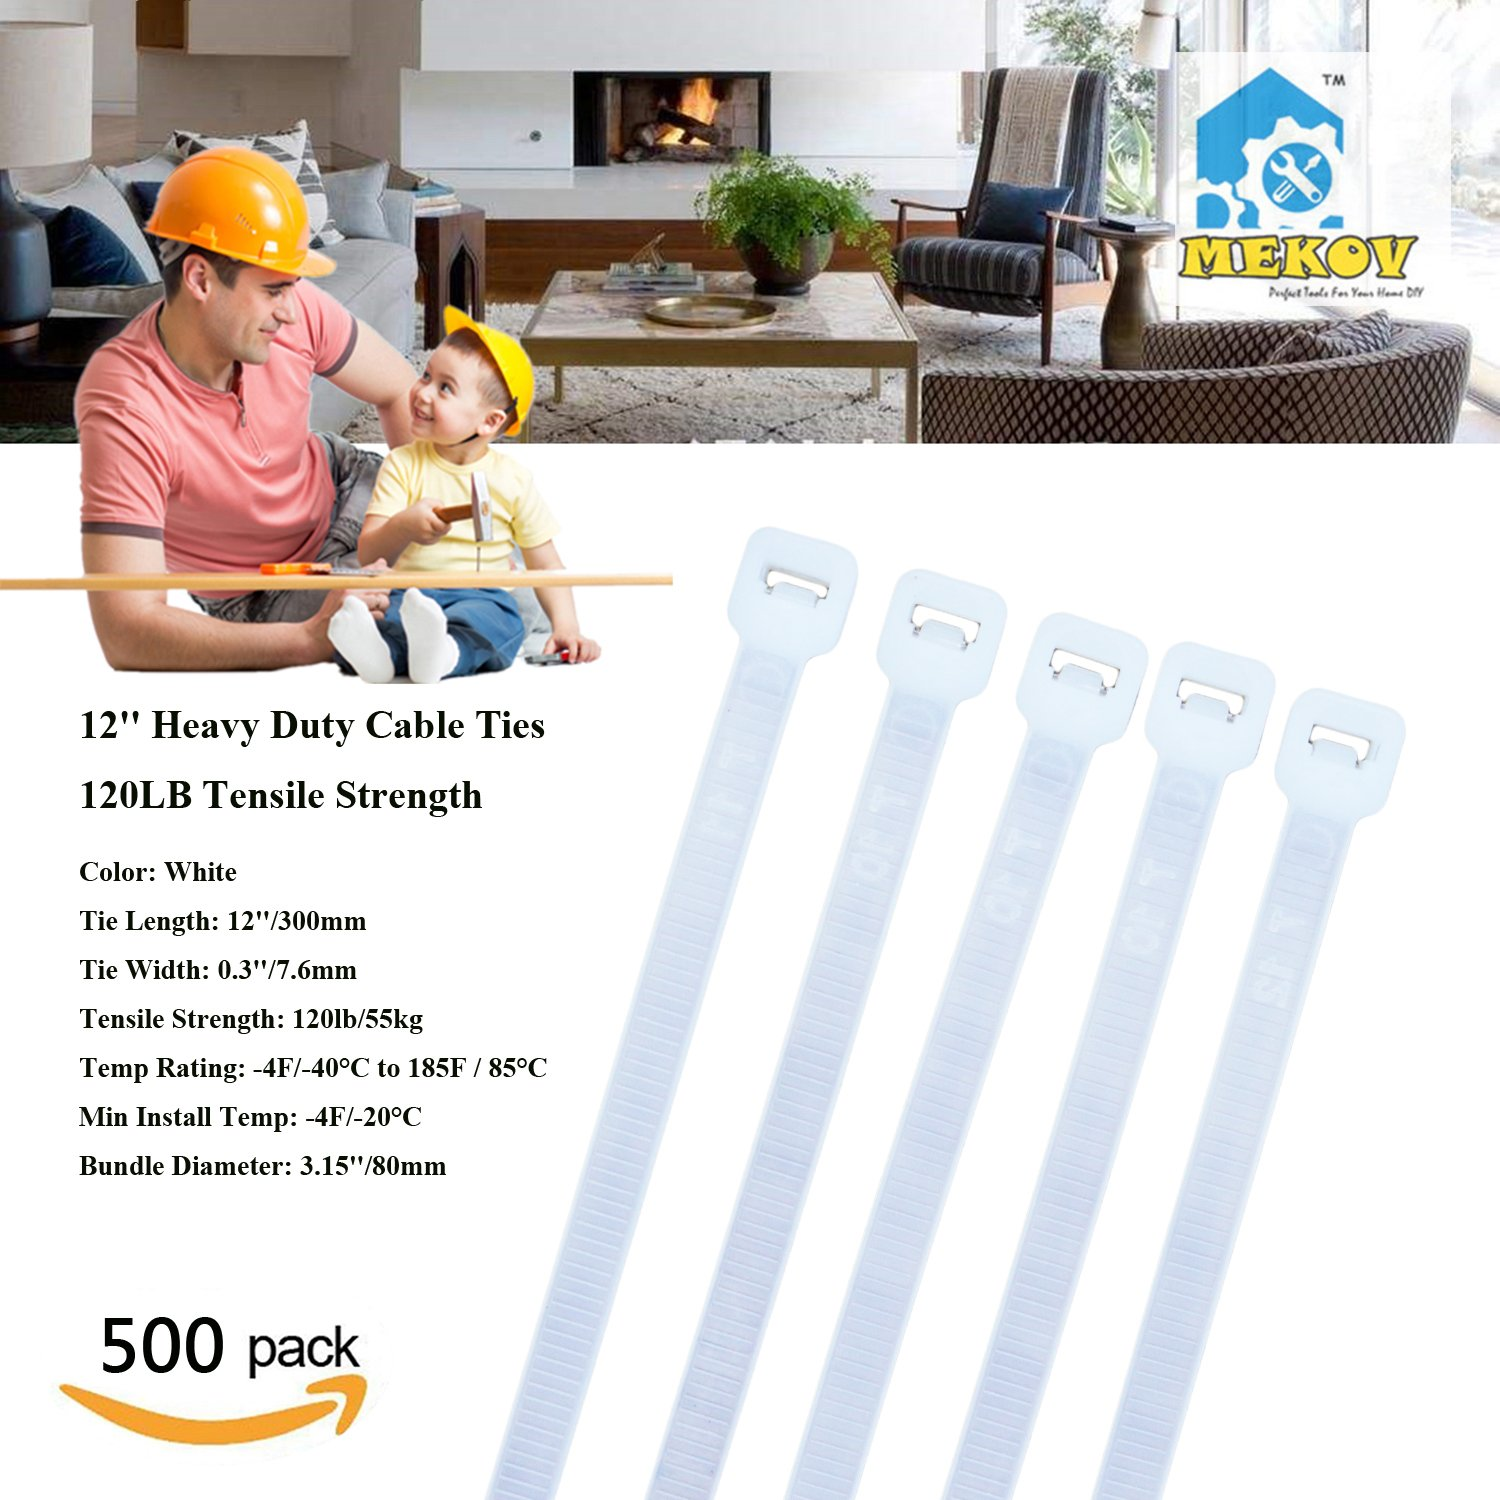 Nylon Cable Ties, Mekov, 12 Inch Heavy Duty Cable Ties, 120-LB Tensile Strength, Zip Ties with 0.3 Inch Width, Durable, Indoor & Outdoor use, UV Resistant (12'', 500 Pack, White)